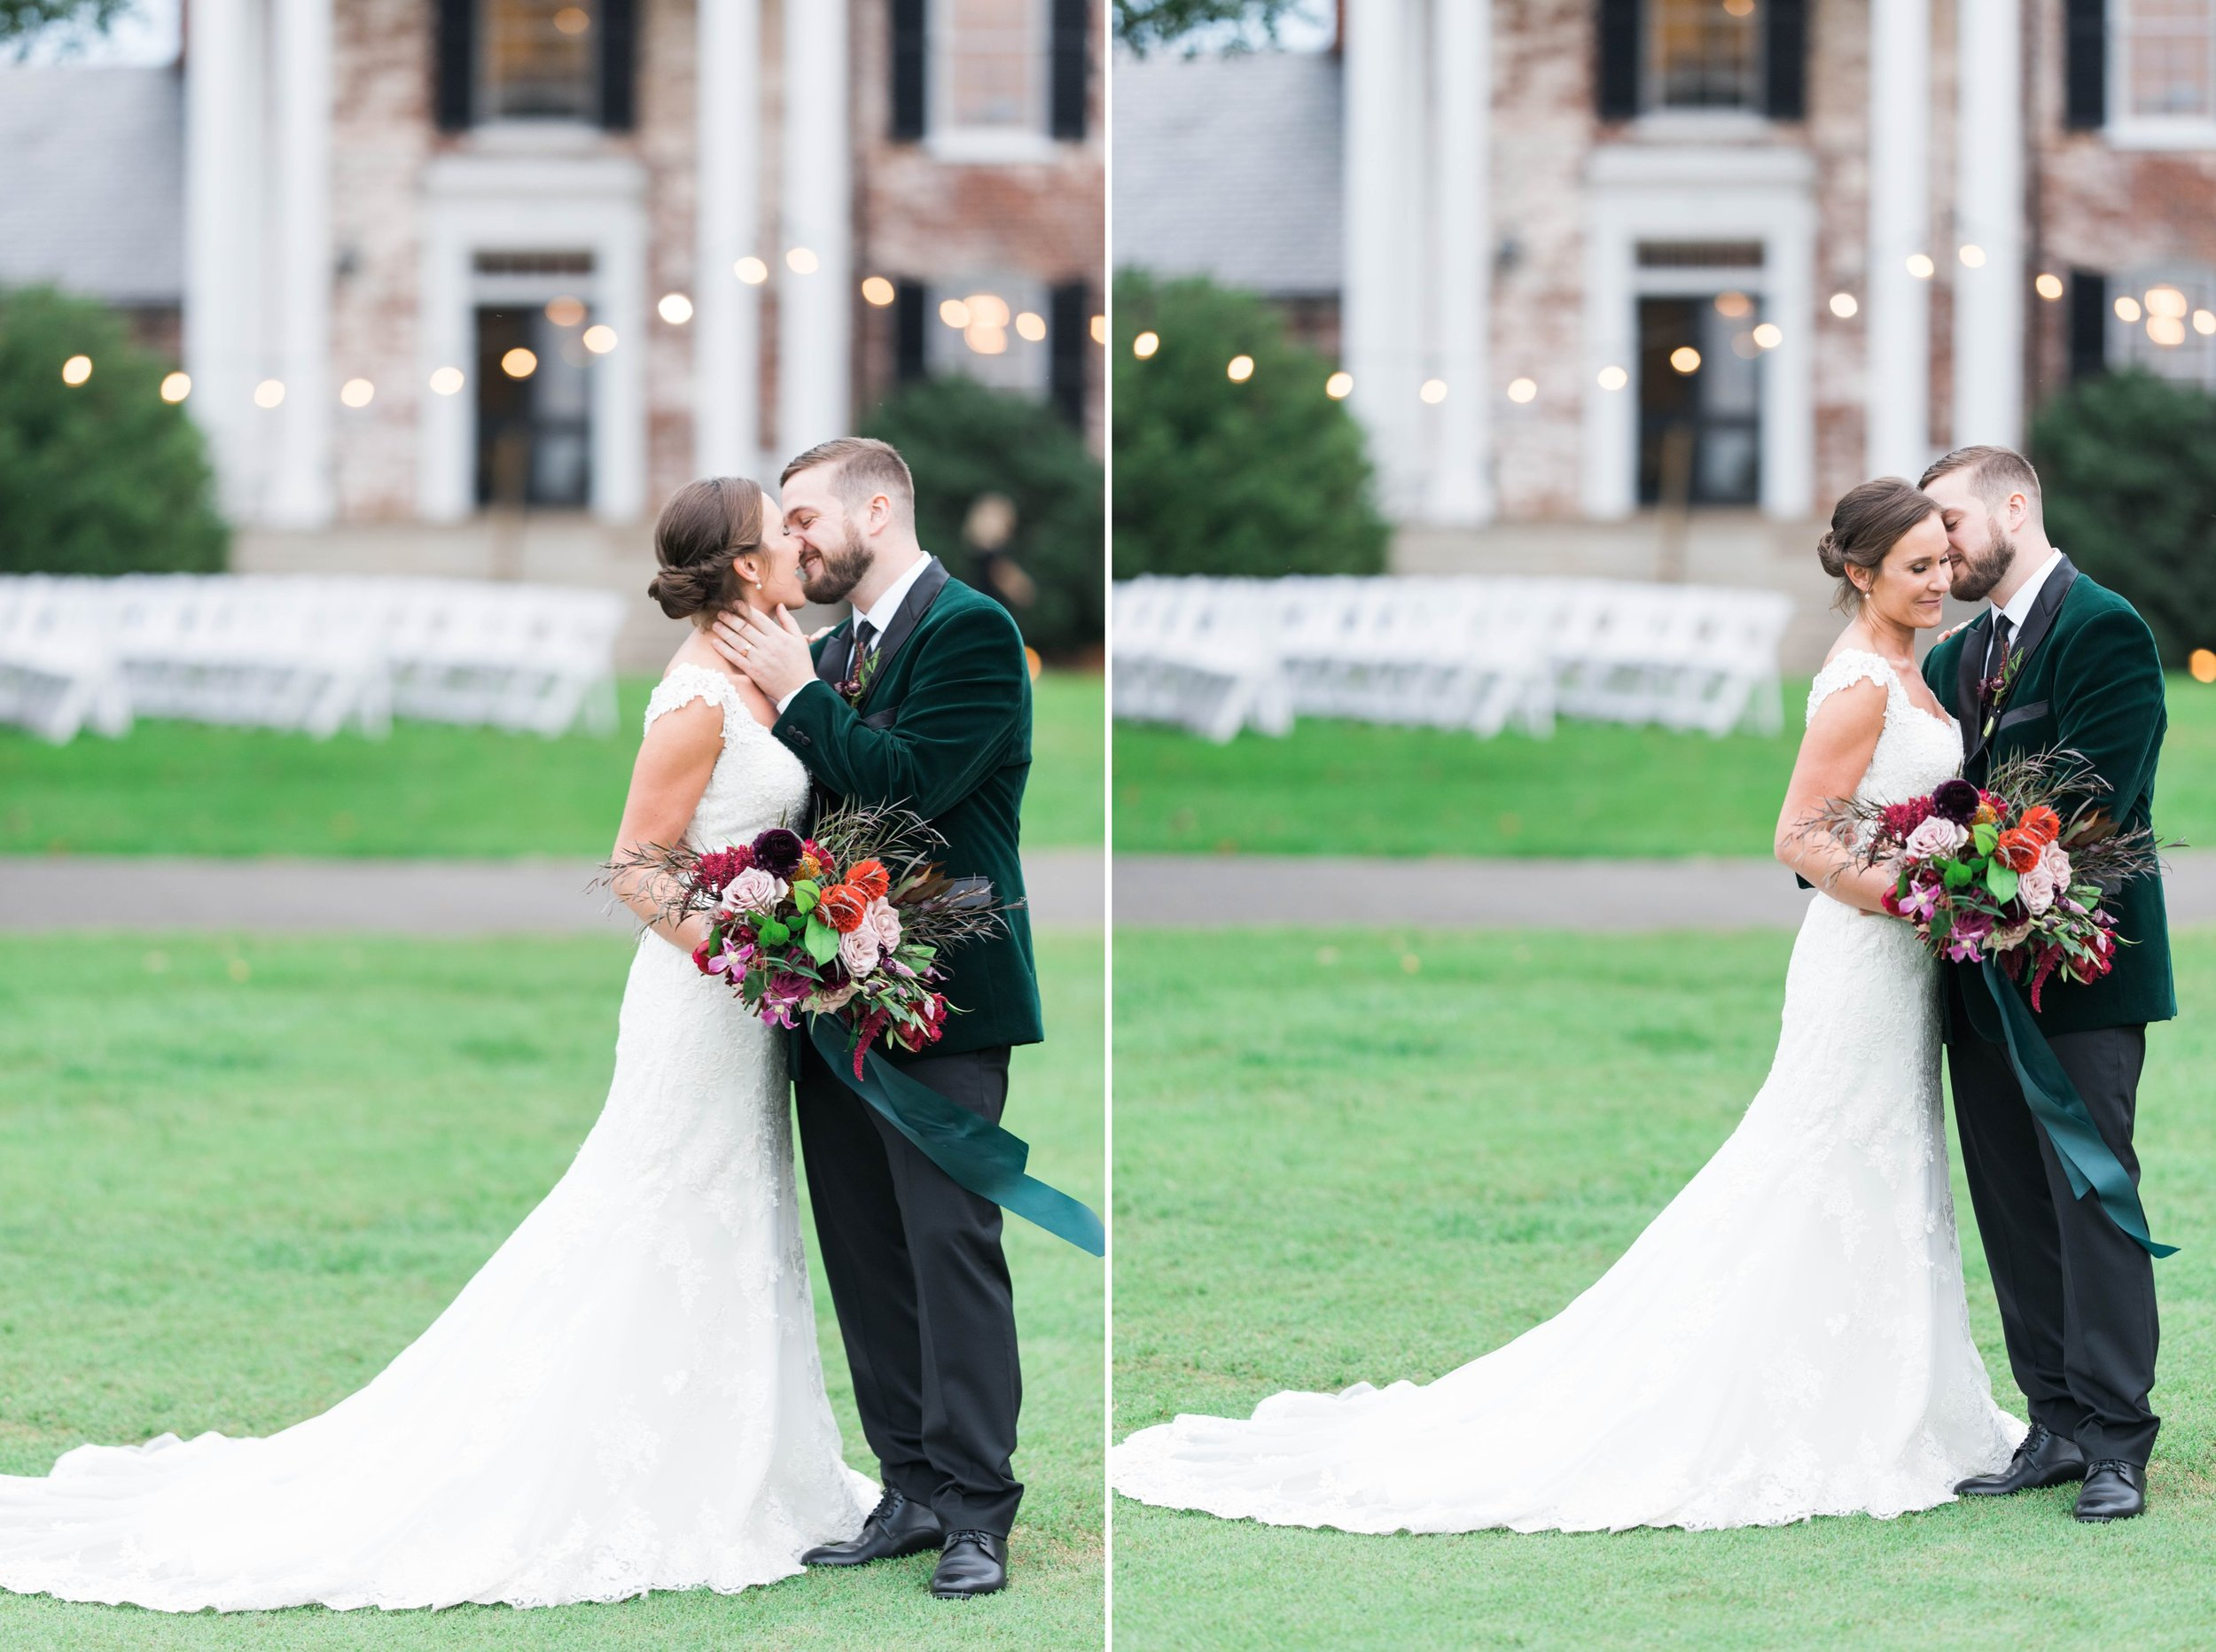 Gordan+Lauren_BoonsboroCountryClubWedding_Virginiaweddingphotographer_LynchburgVi 23.jpg